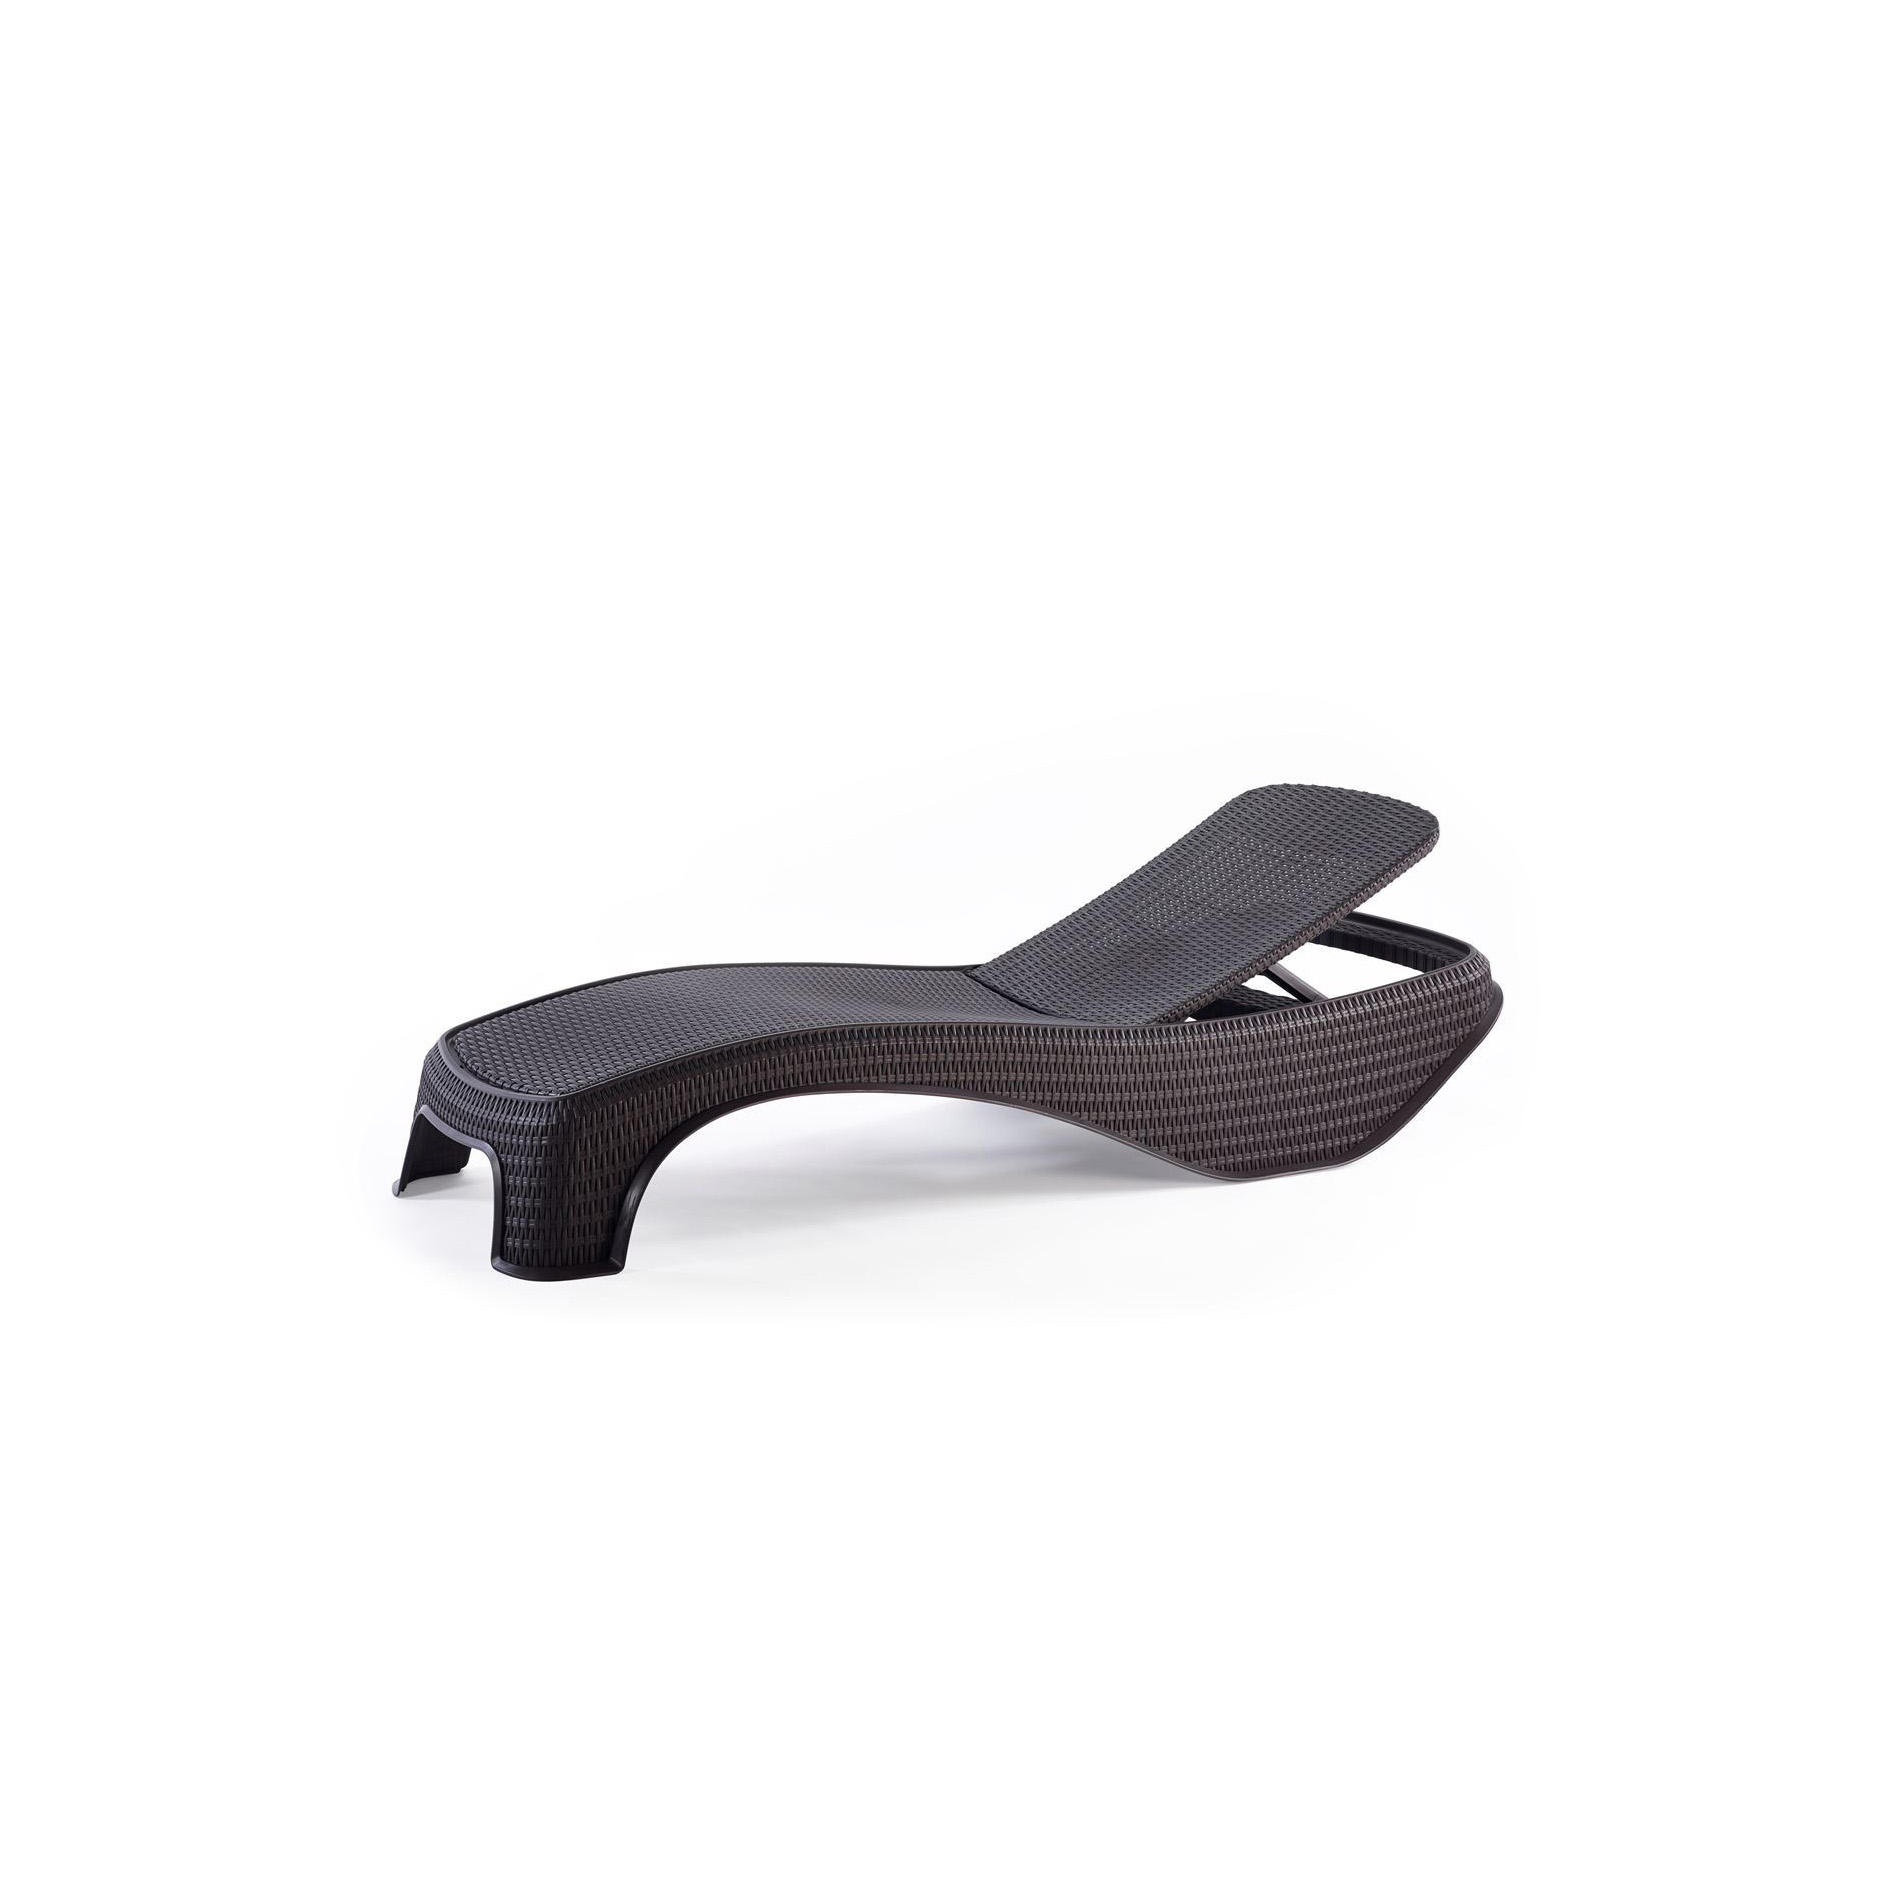 Chaise longue Chaise longue Inclinable Patio Piscine Chaise longue